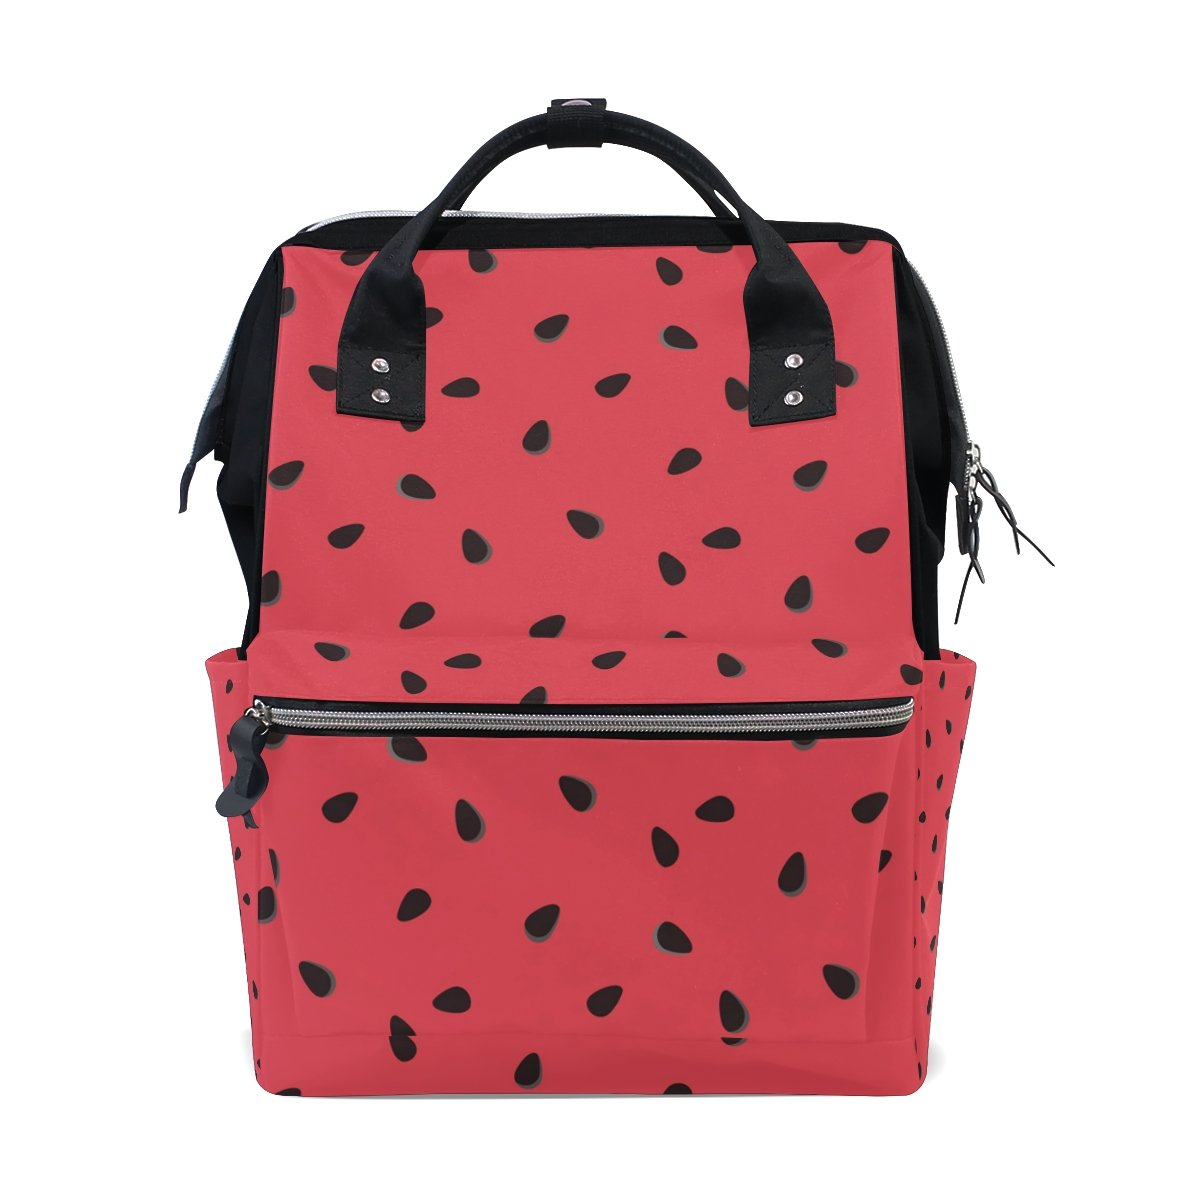 31dc6f495493 Amazon.com: JSTEL Laptop College Bags Student Travel Watermelon And ...